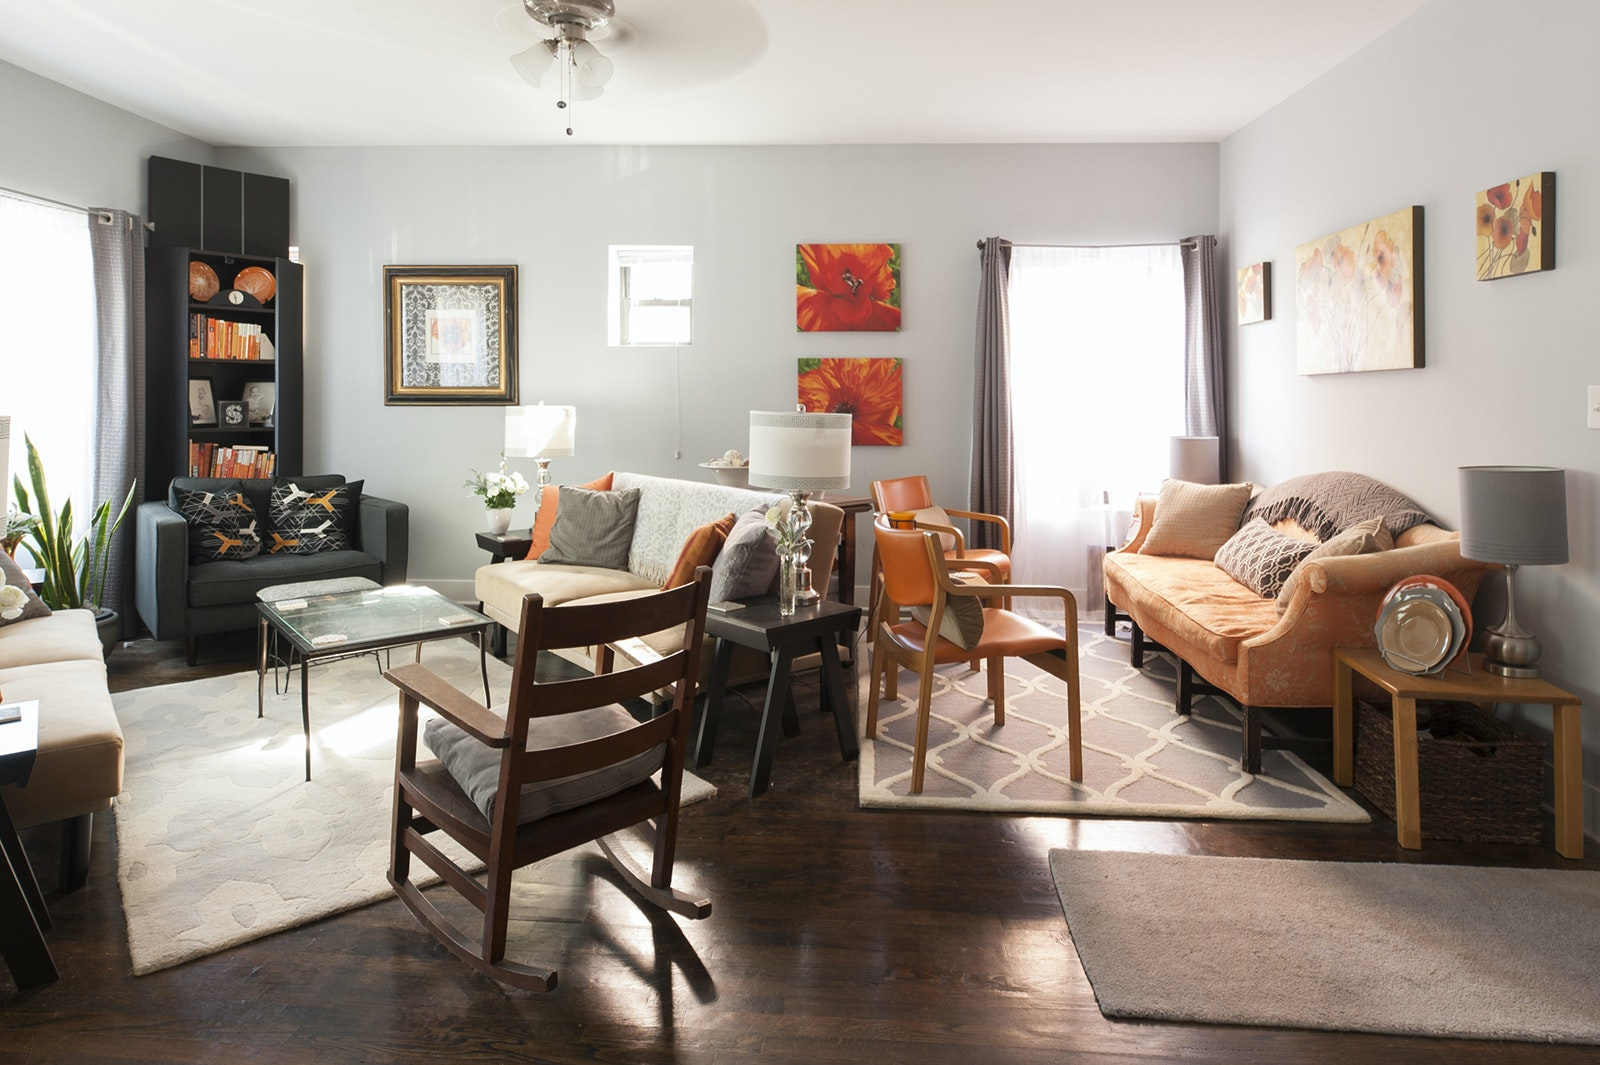 Guests can rent a private room in a lovely vintage home in Andersonville, on the north side of Chicago.